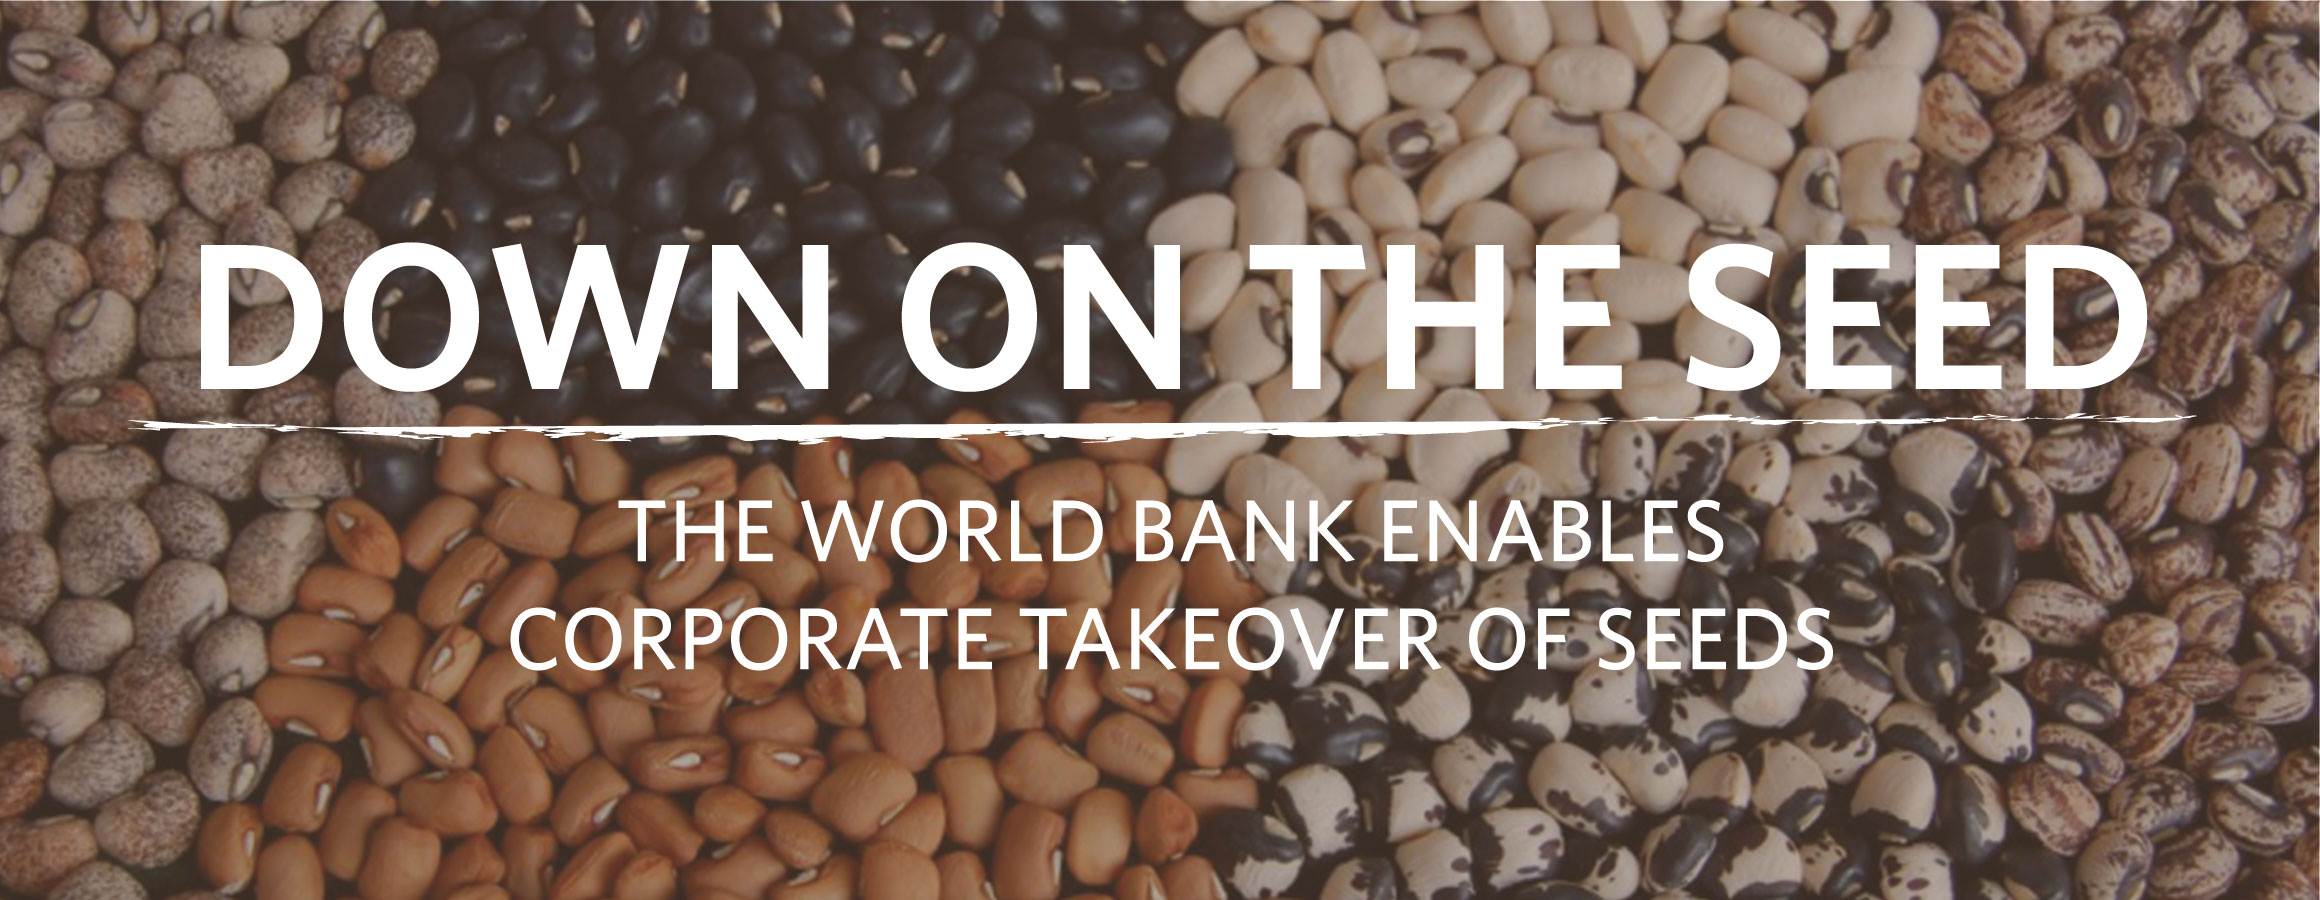 Down on the Seed: Enabling the Business of Agriculture Enables Corporate Takeover